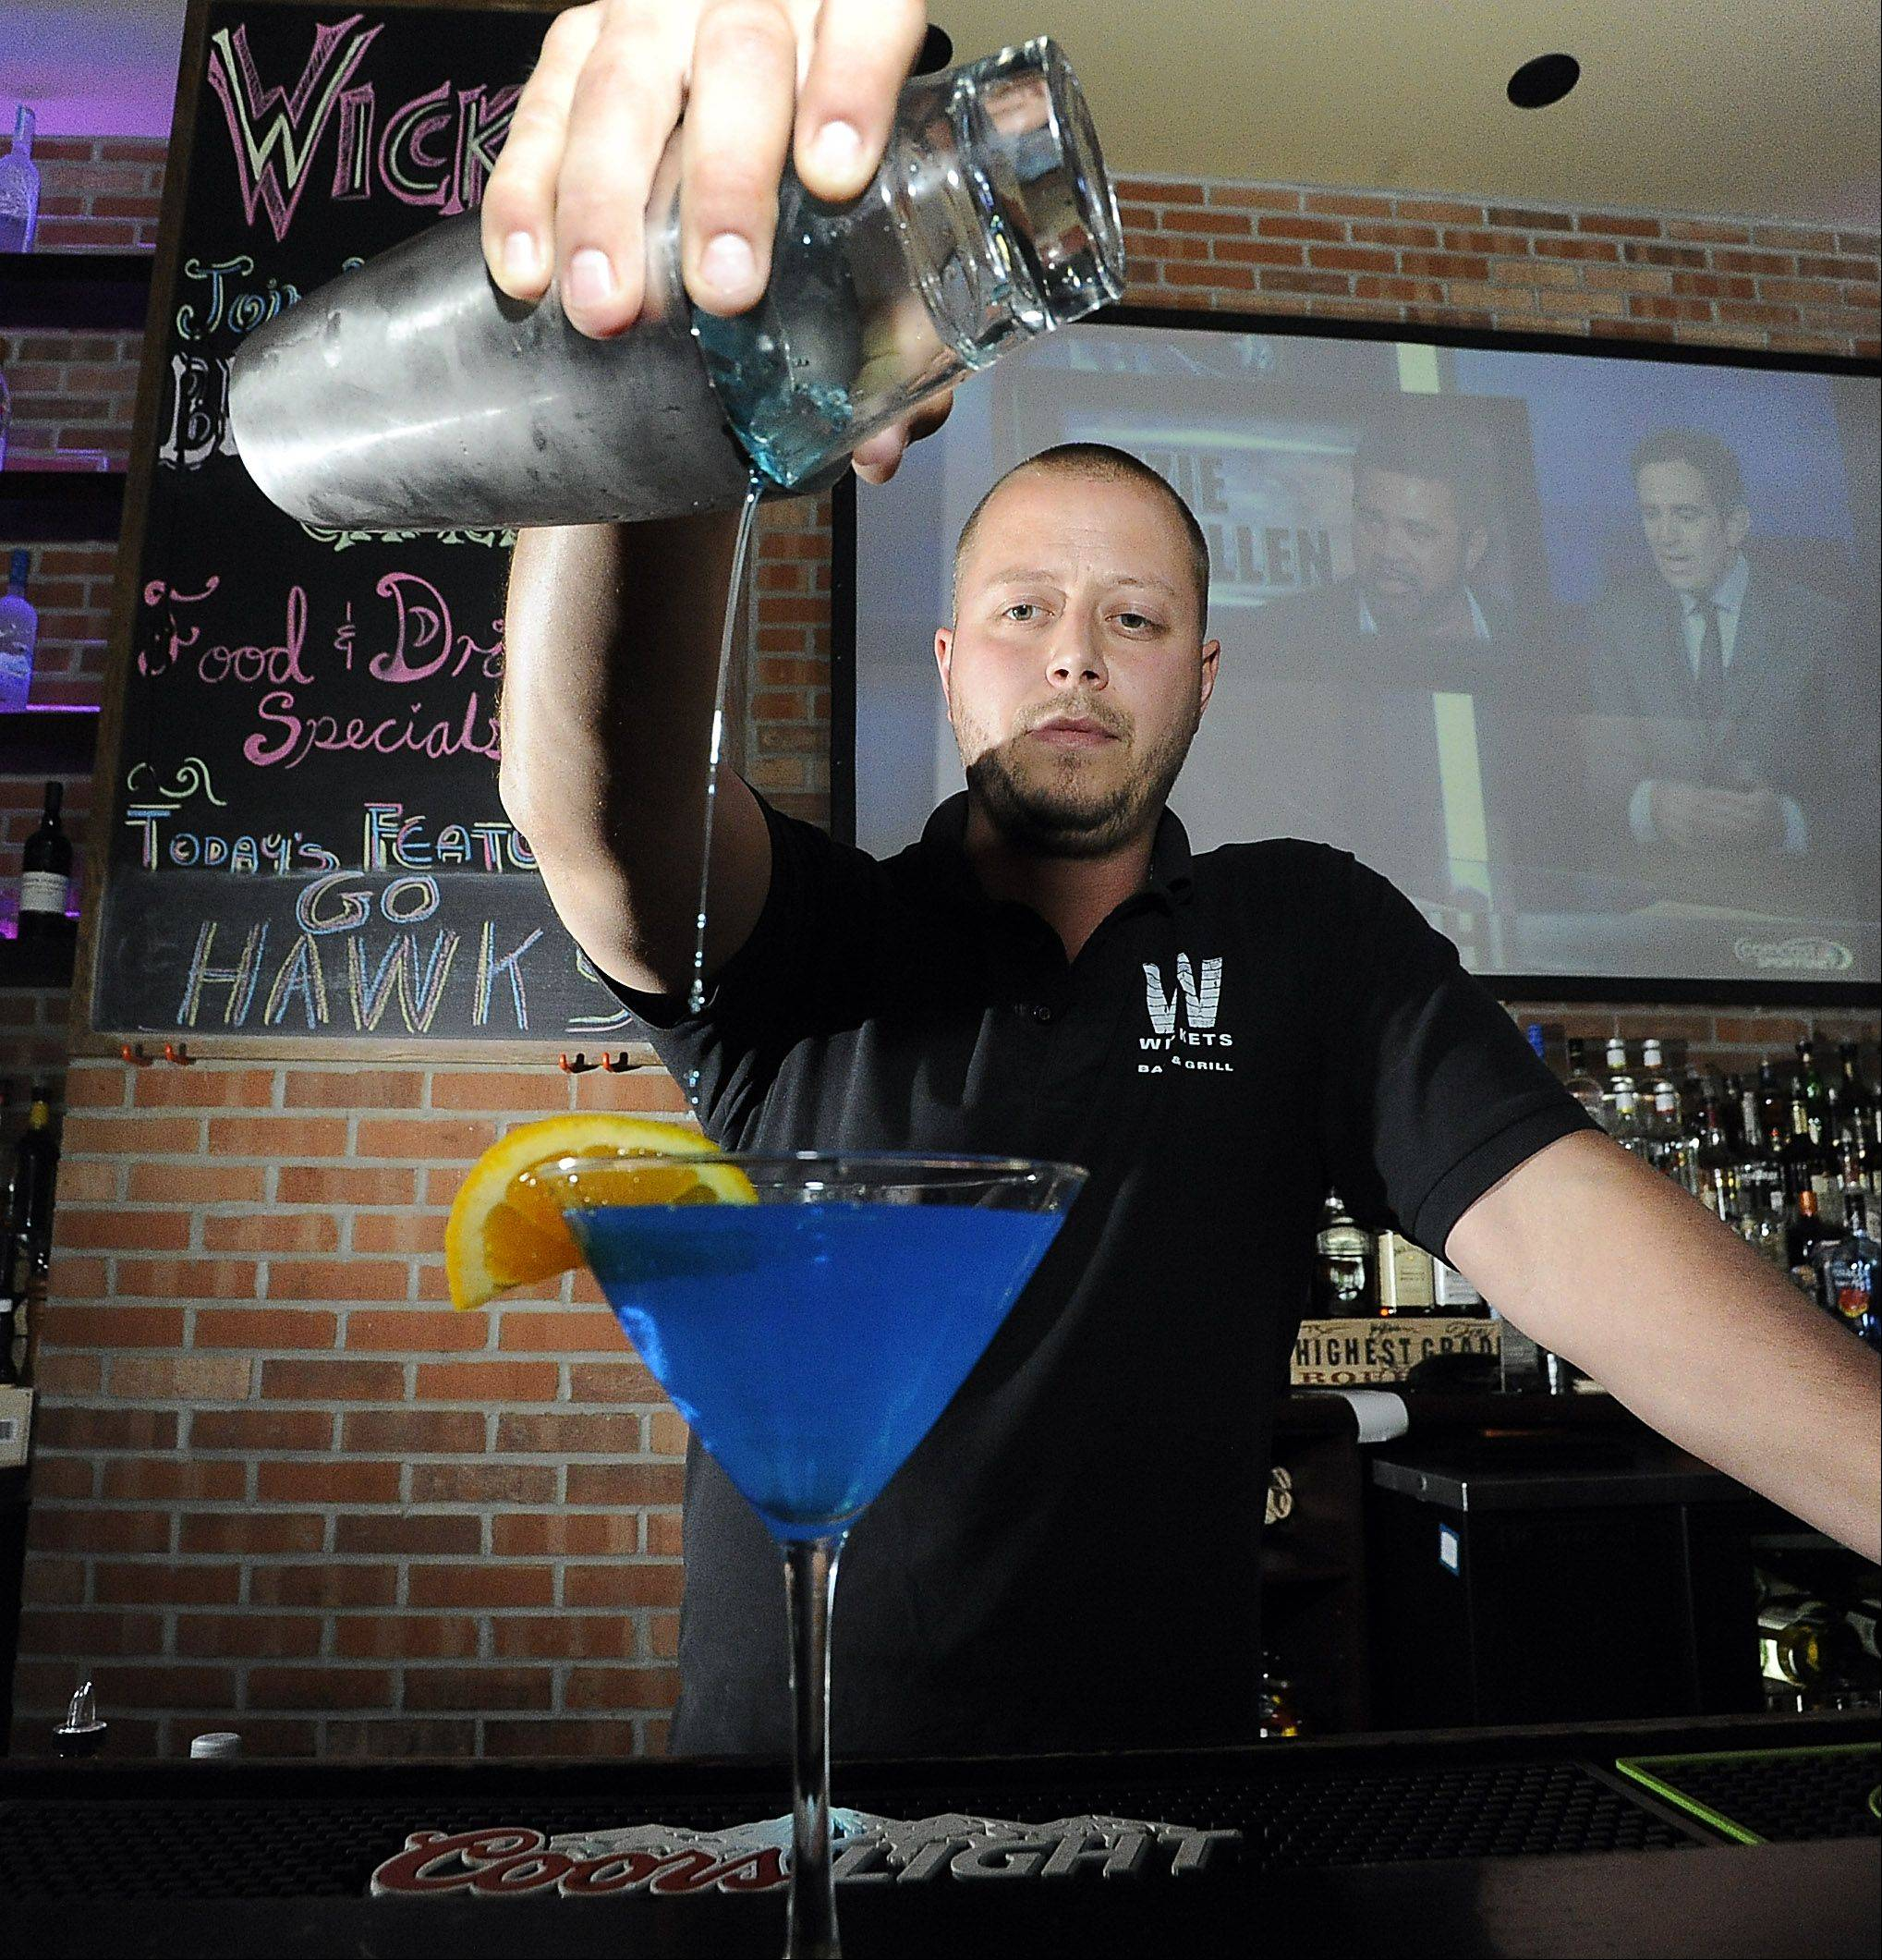 Bartender Joe Catomer mixes a summer drink at Wickets Bar and Grill in Schaumburg.